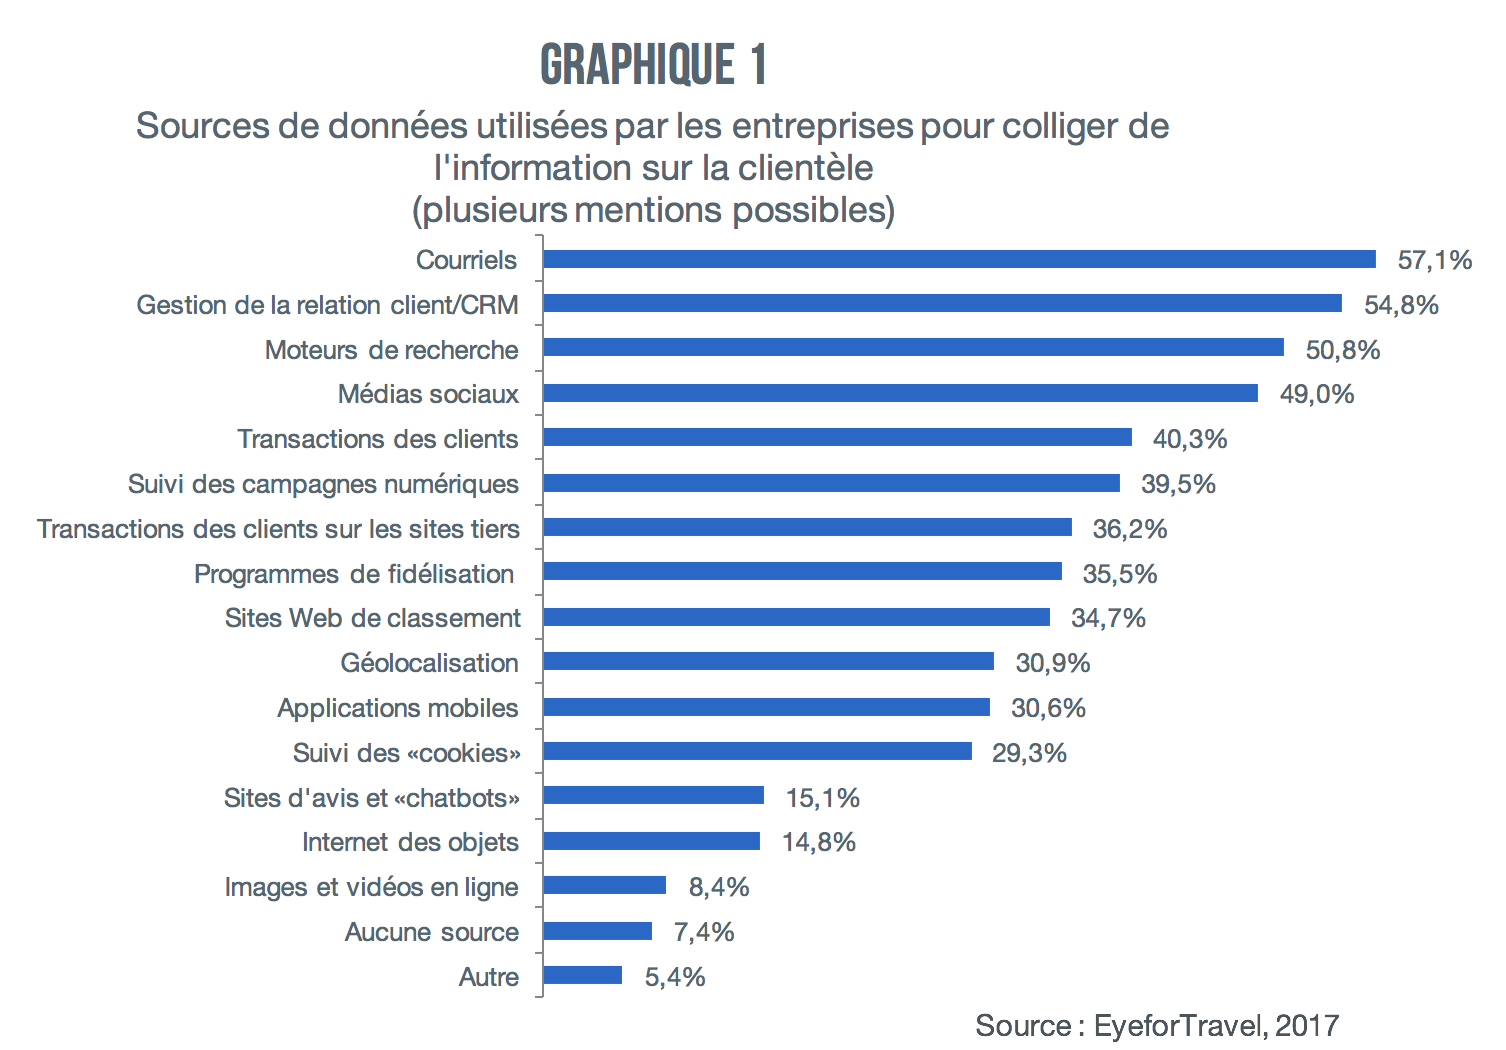 graphique-1-sources-de-donnees